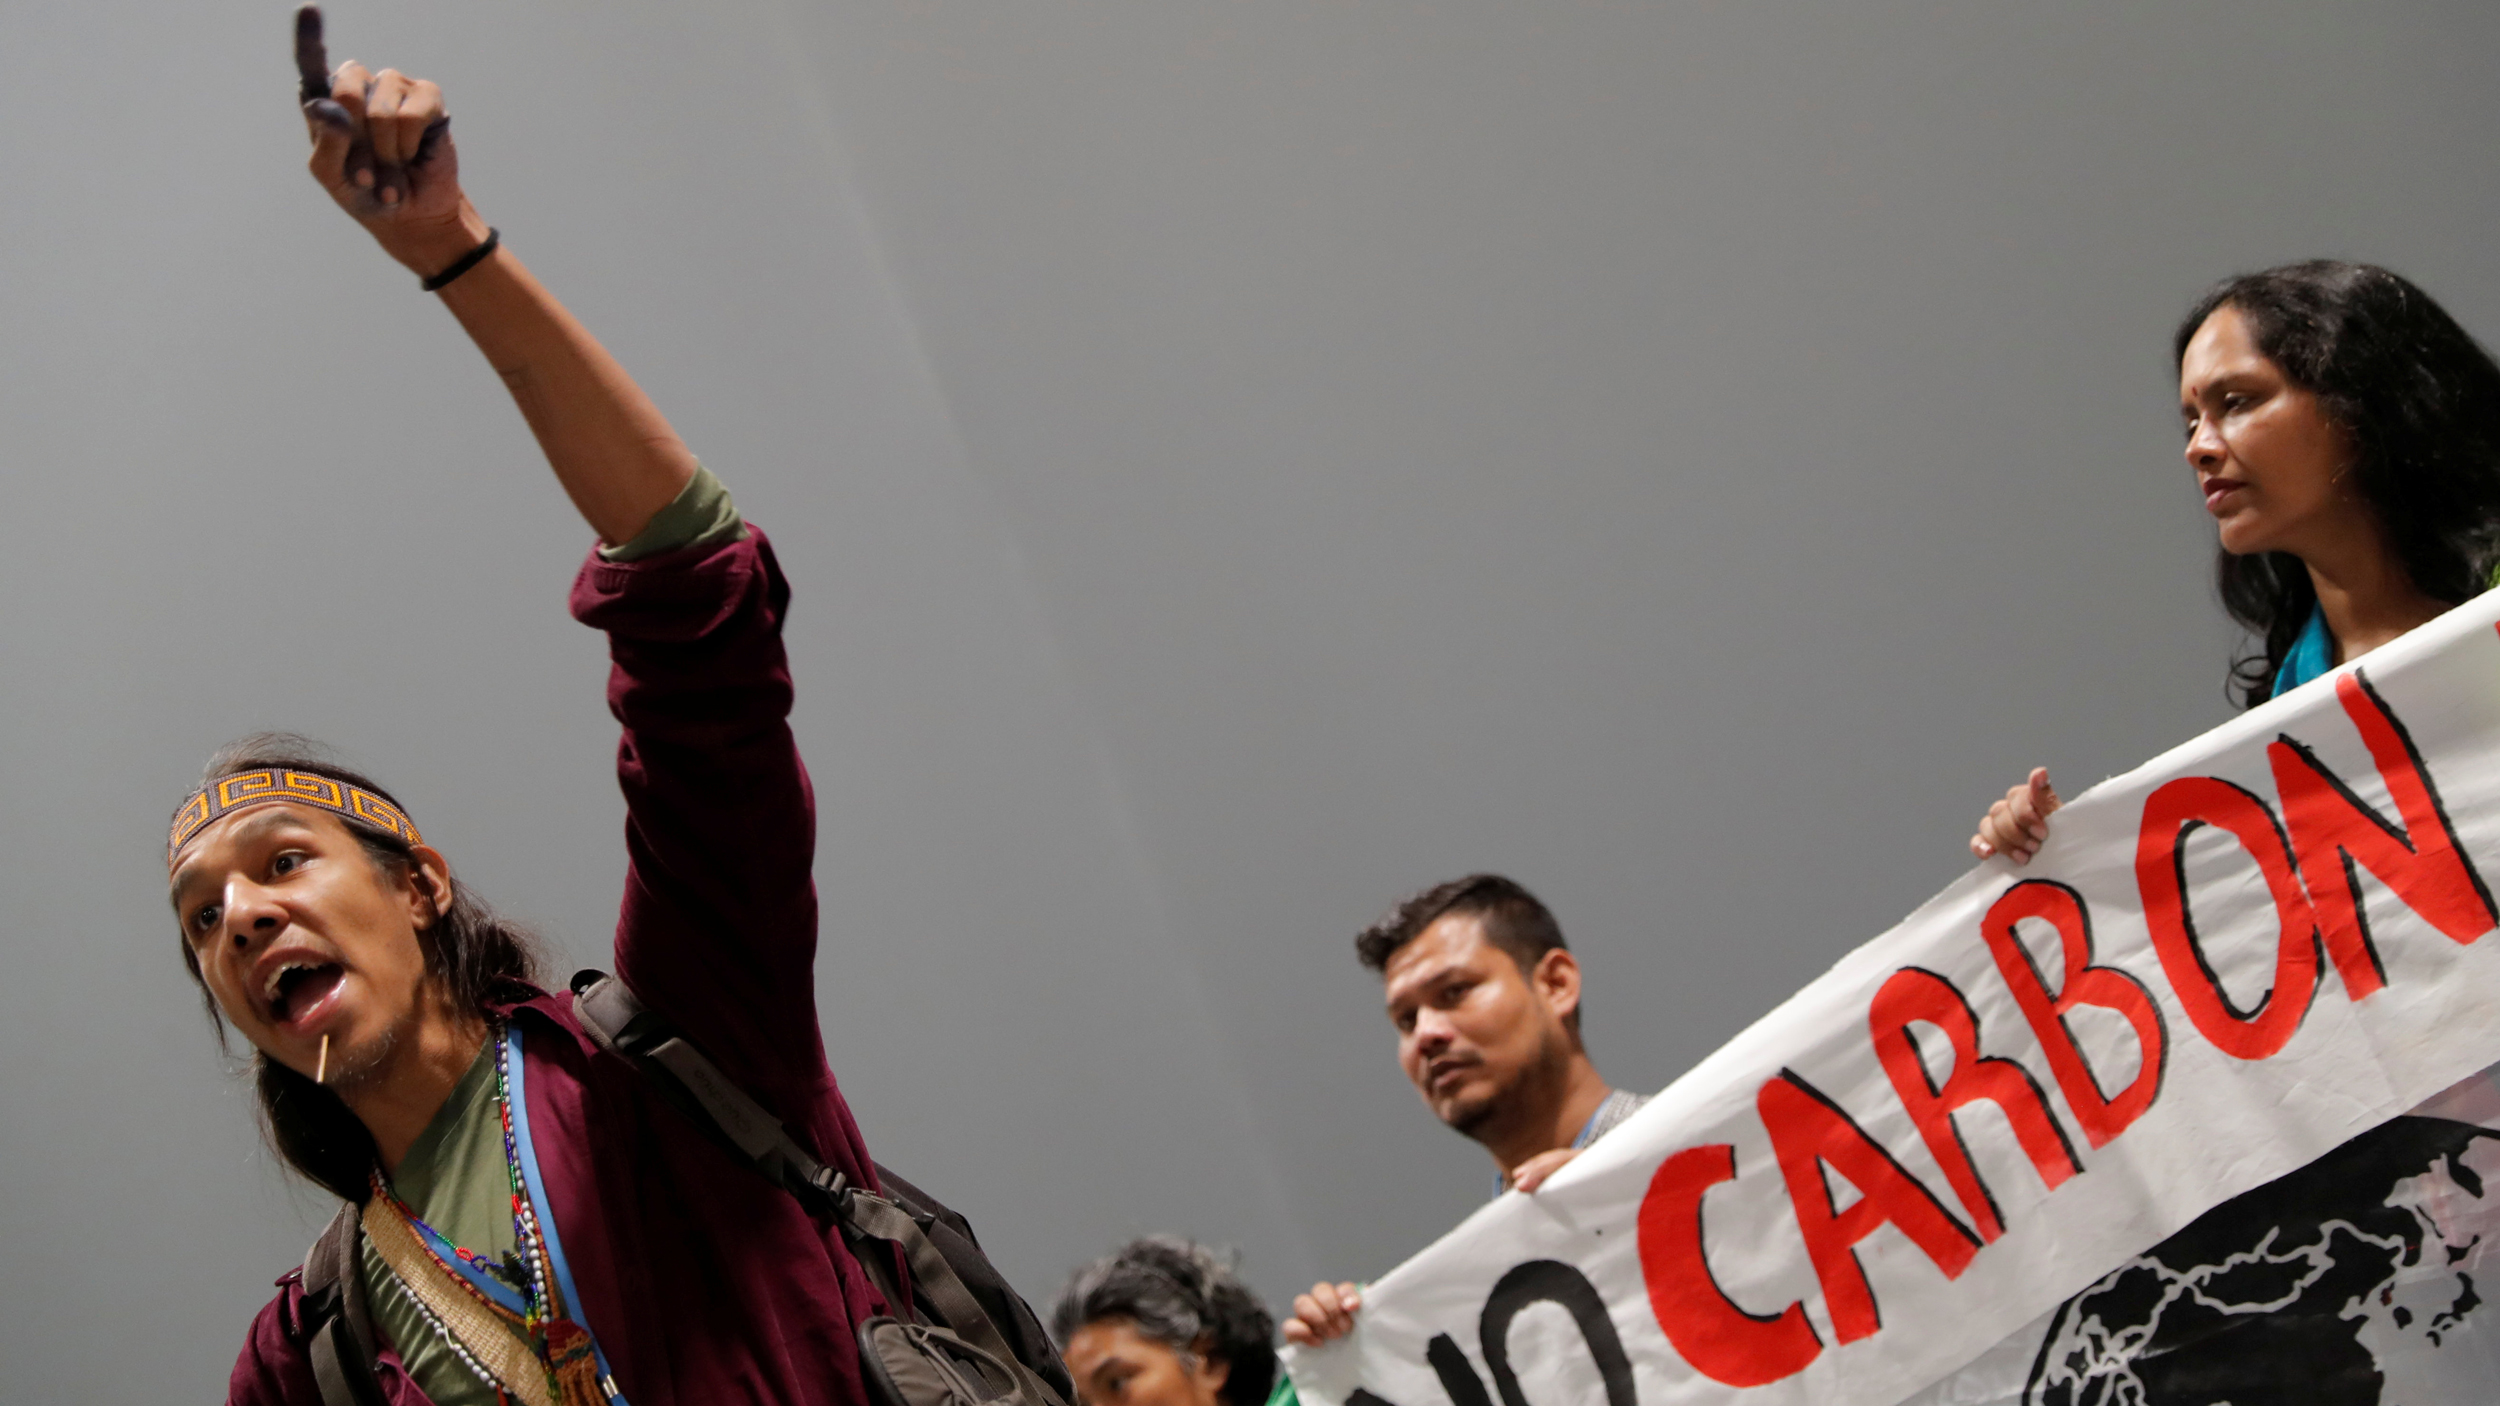 A man raises his left arm in protest.